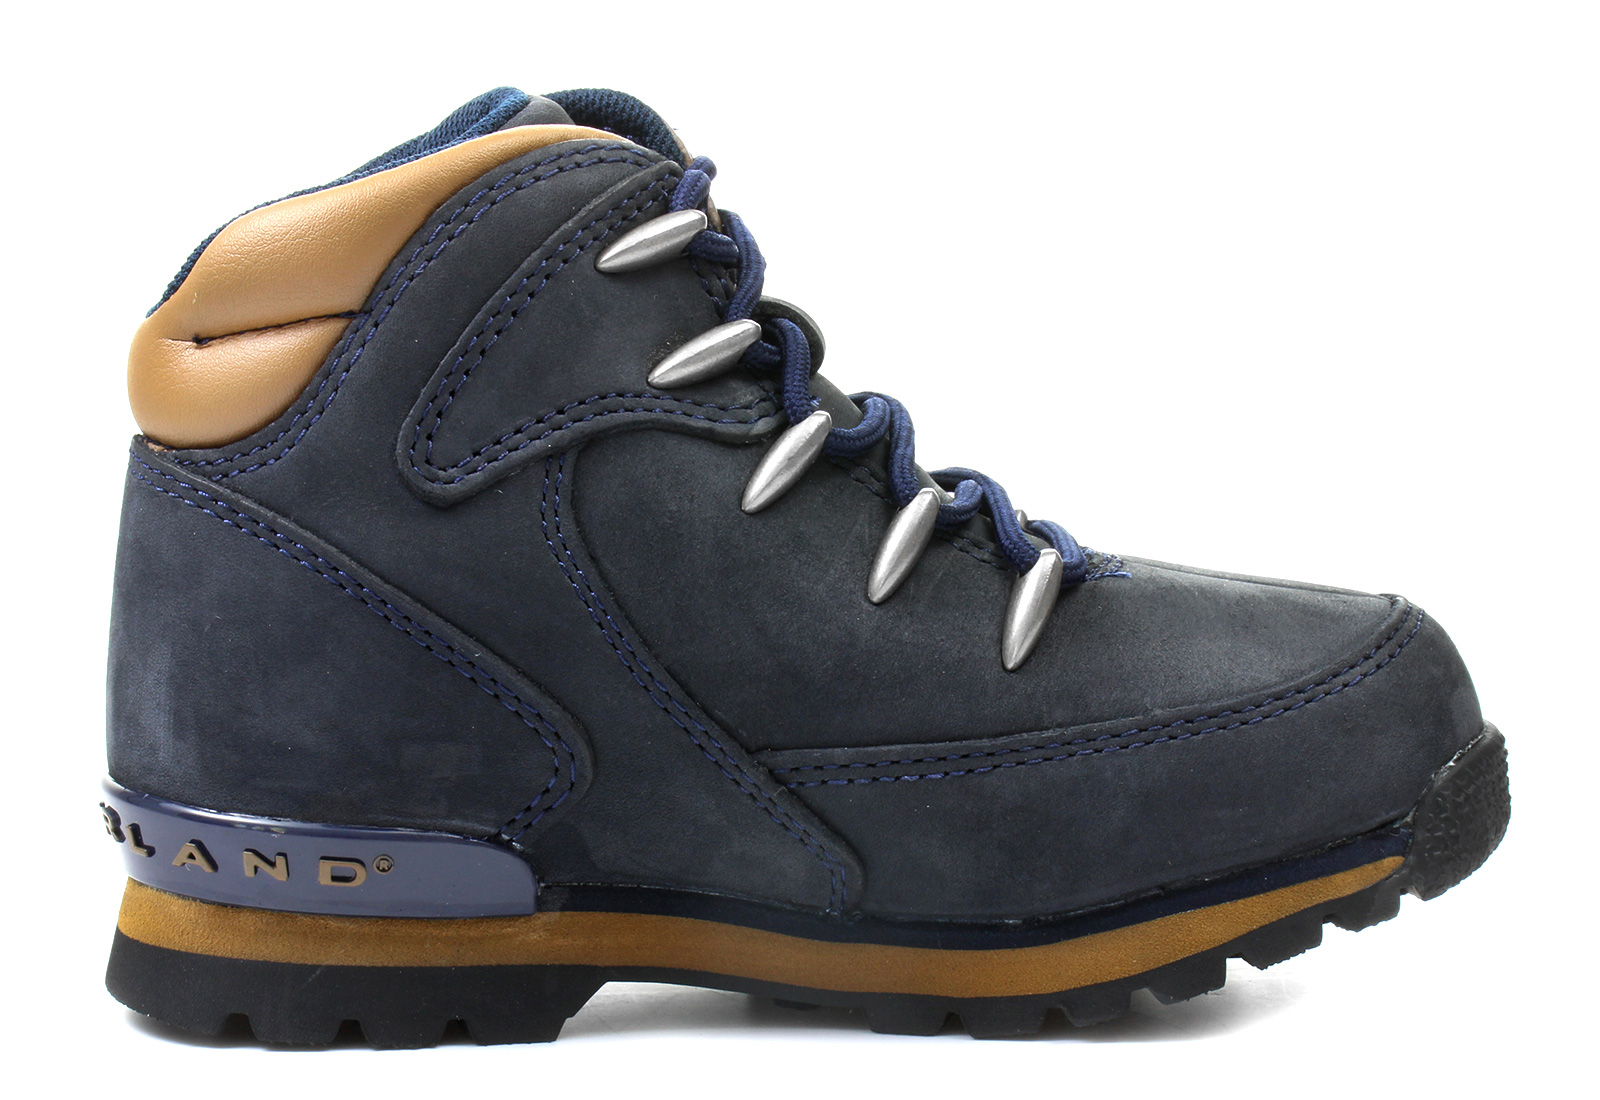 timberland boots euro rock hiker 3082rnvy online